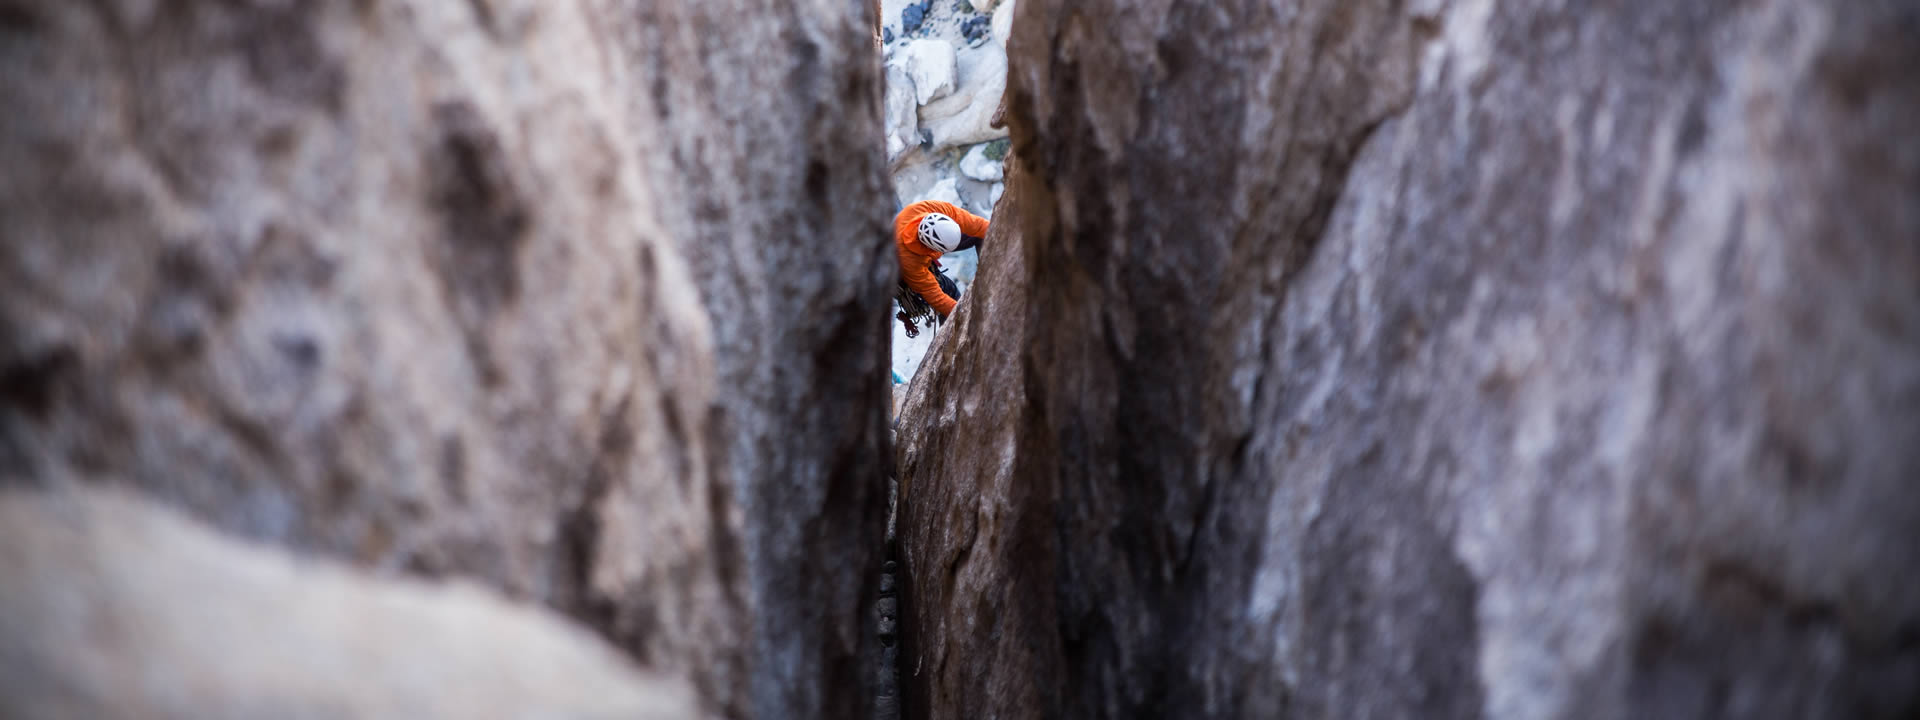 Rock Climbing - Spanish Pyrenees  Trips, courses and tours